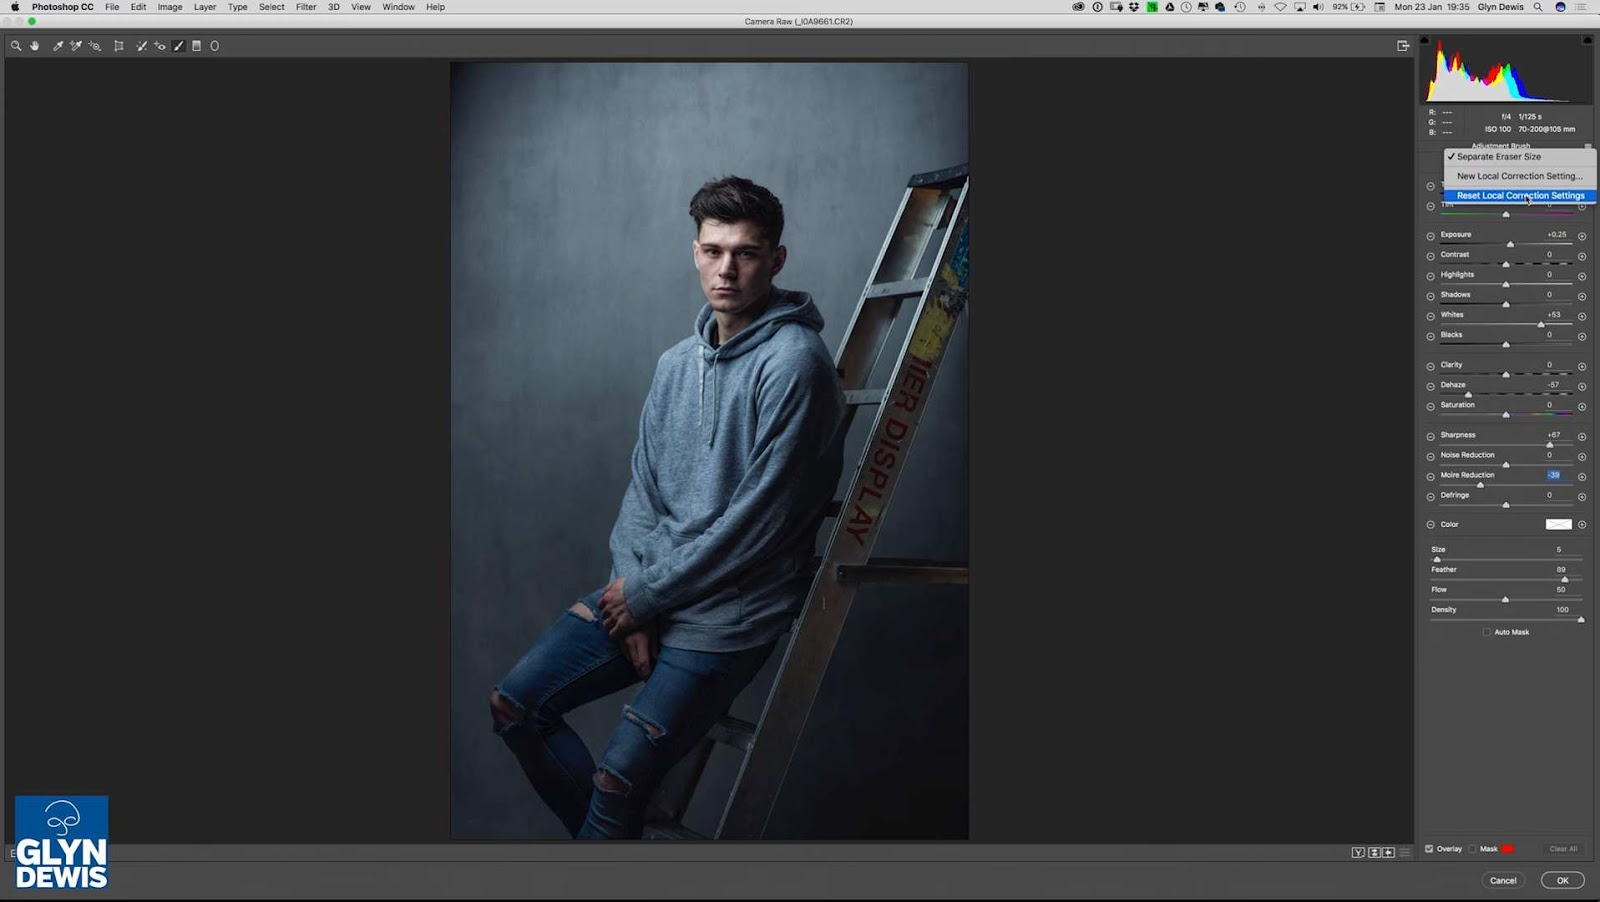 Photoshop and Lightroom: Complete Male Portrait Retouching Workflow